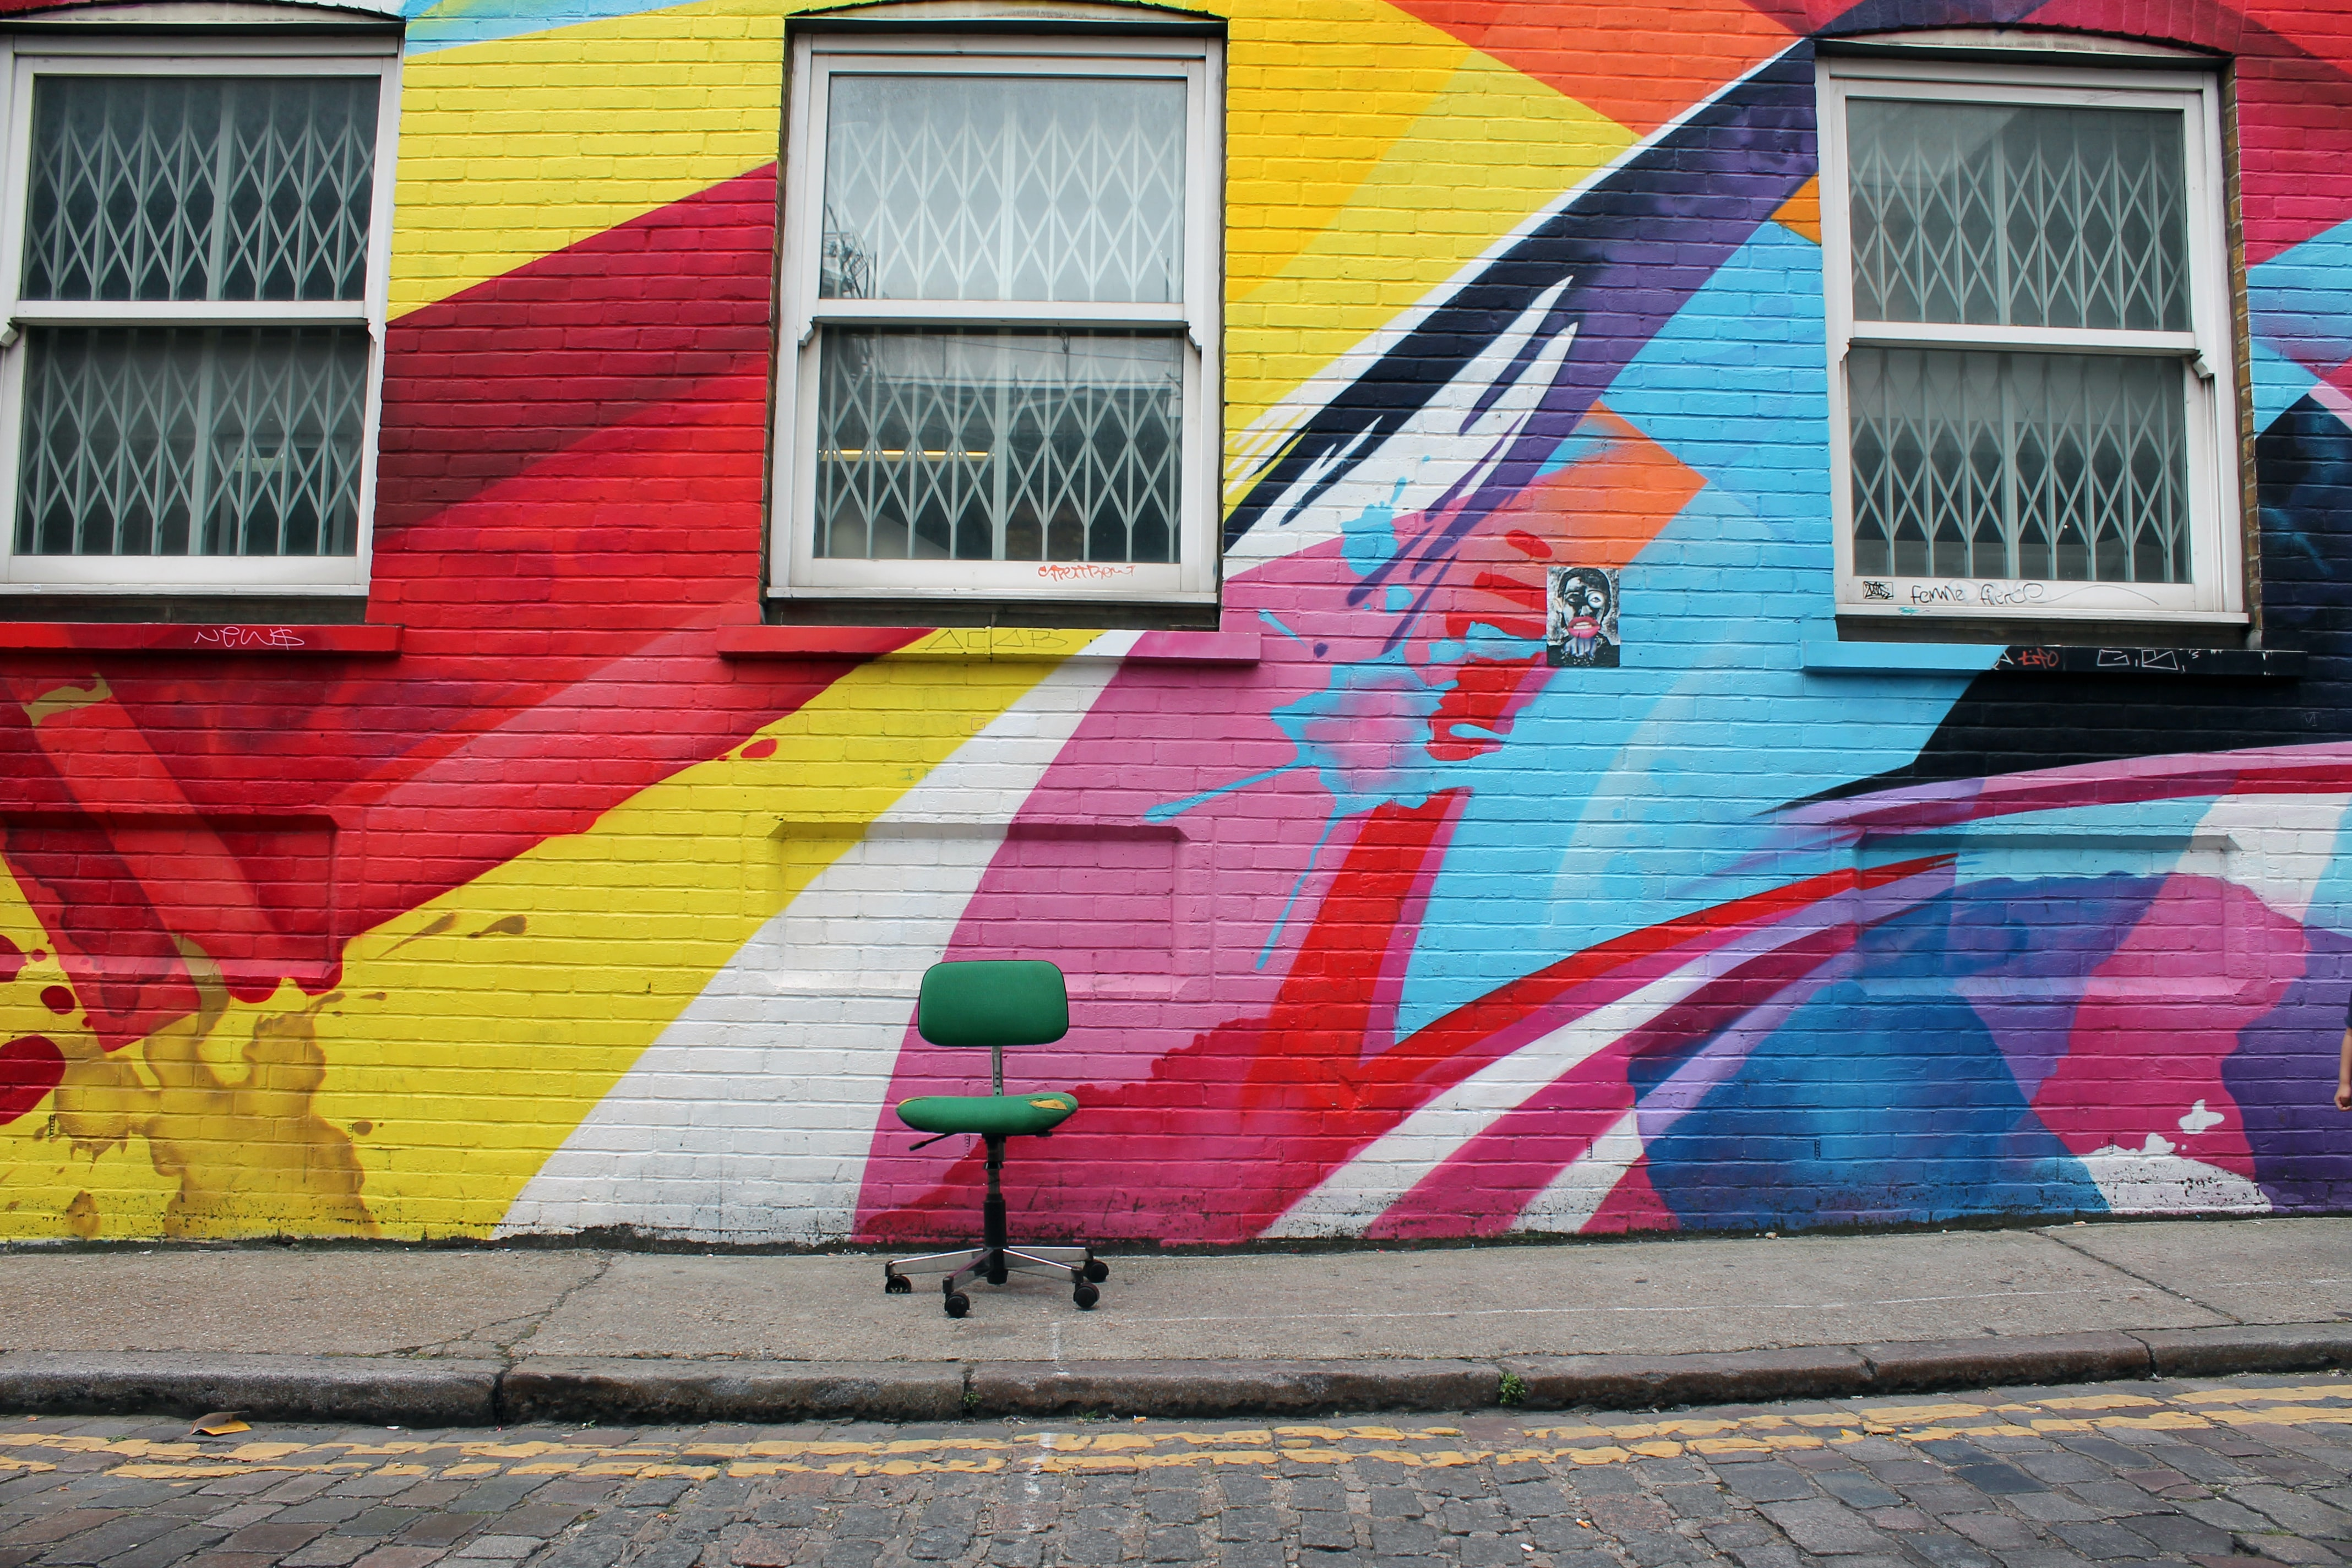 Green chair sits in front of colorful graffiti on brick building with three windows